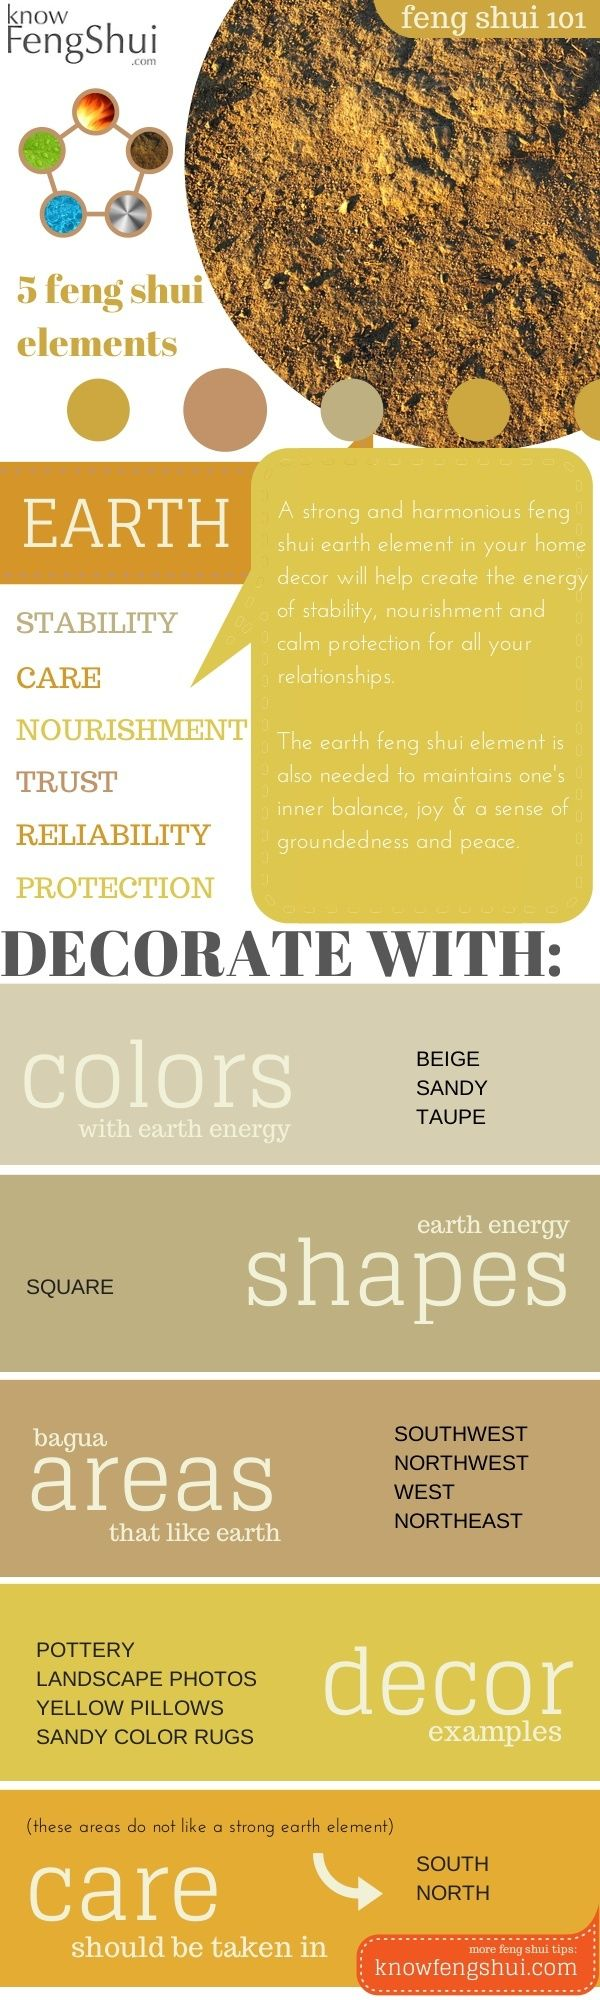 which colors represent the earth deloufleur decor designs 618 985 3355. Black Bedroom Furniture Sets. Home Design Ideas